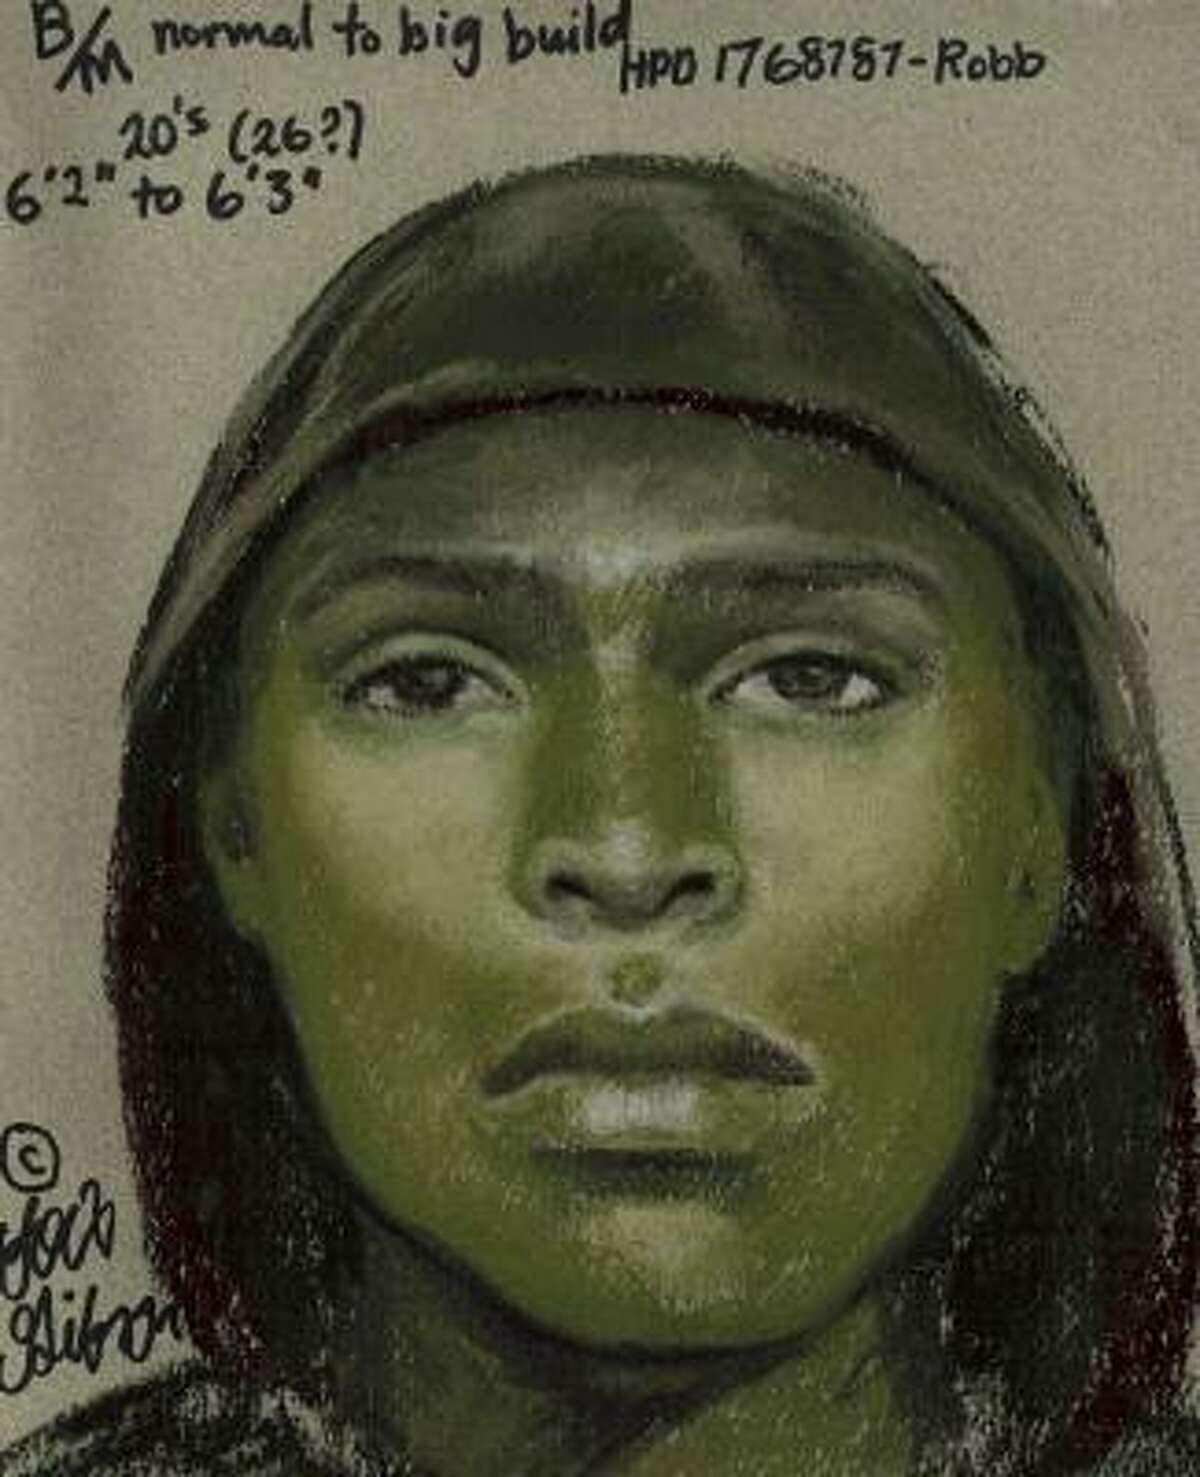 This composite sketch is of one suspect in the Jan. 16 robbery of an employee at the Channelview Post Office.